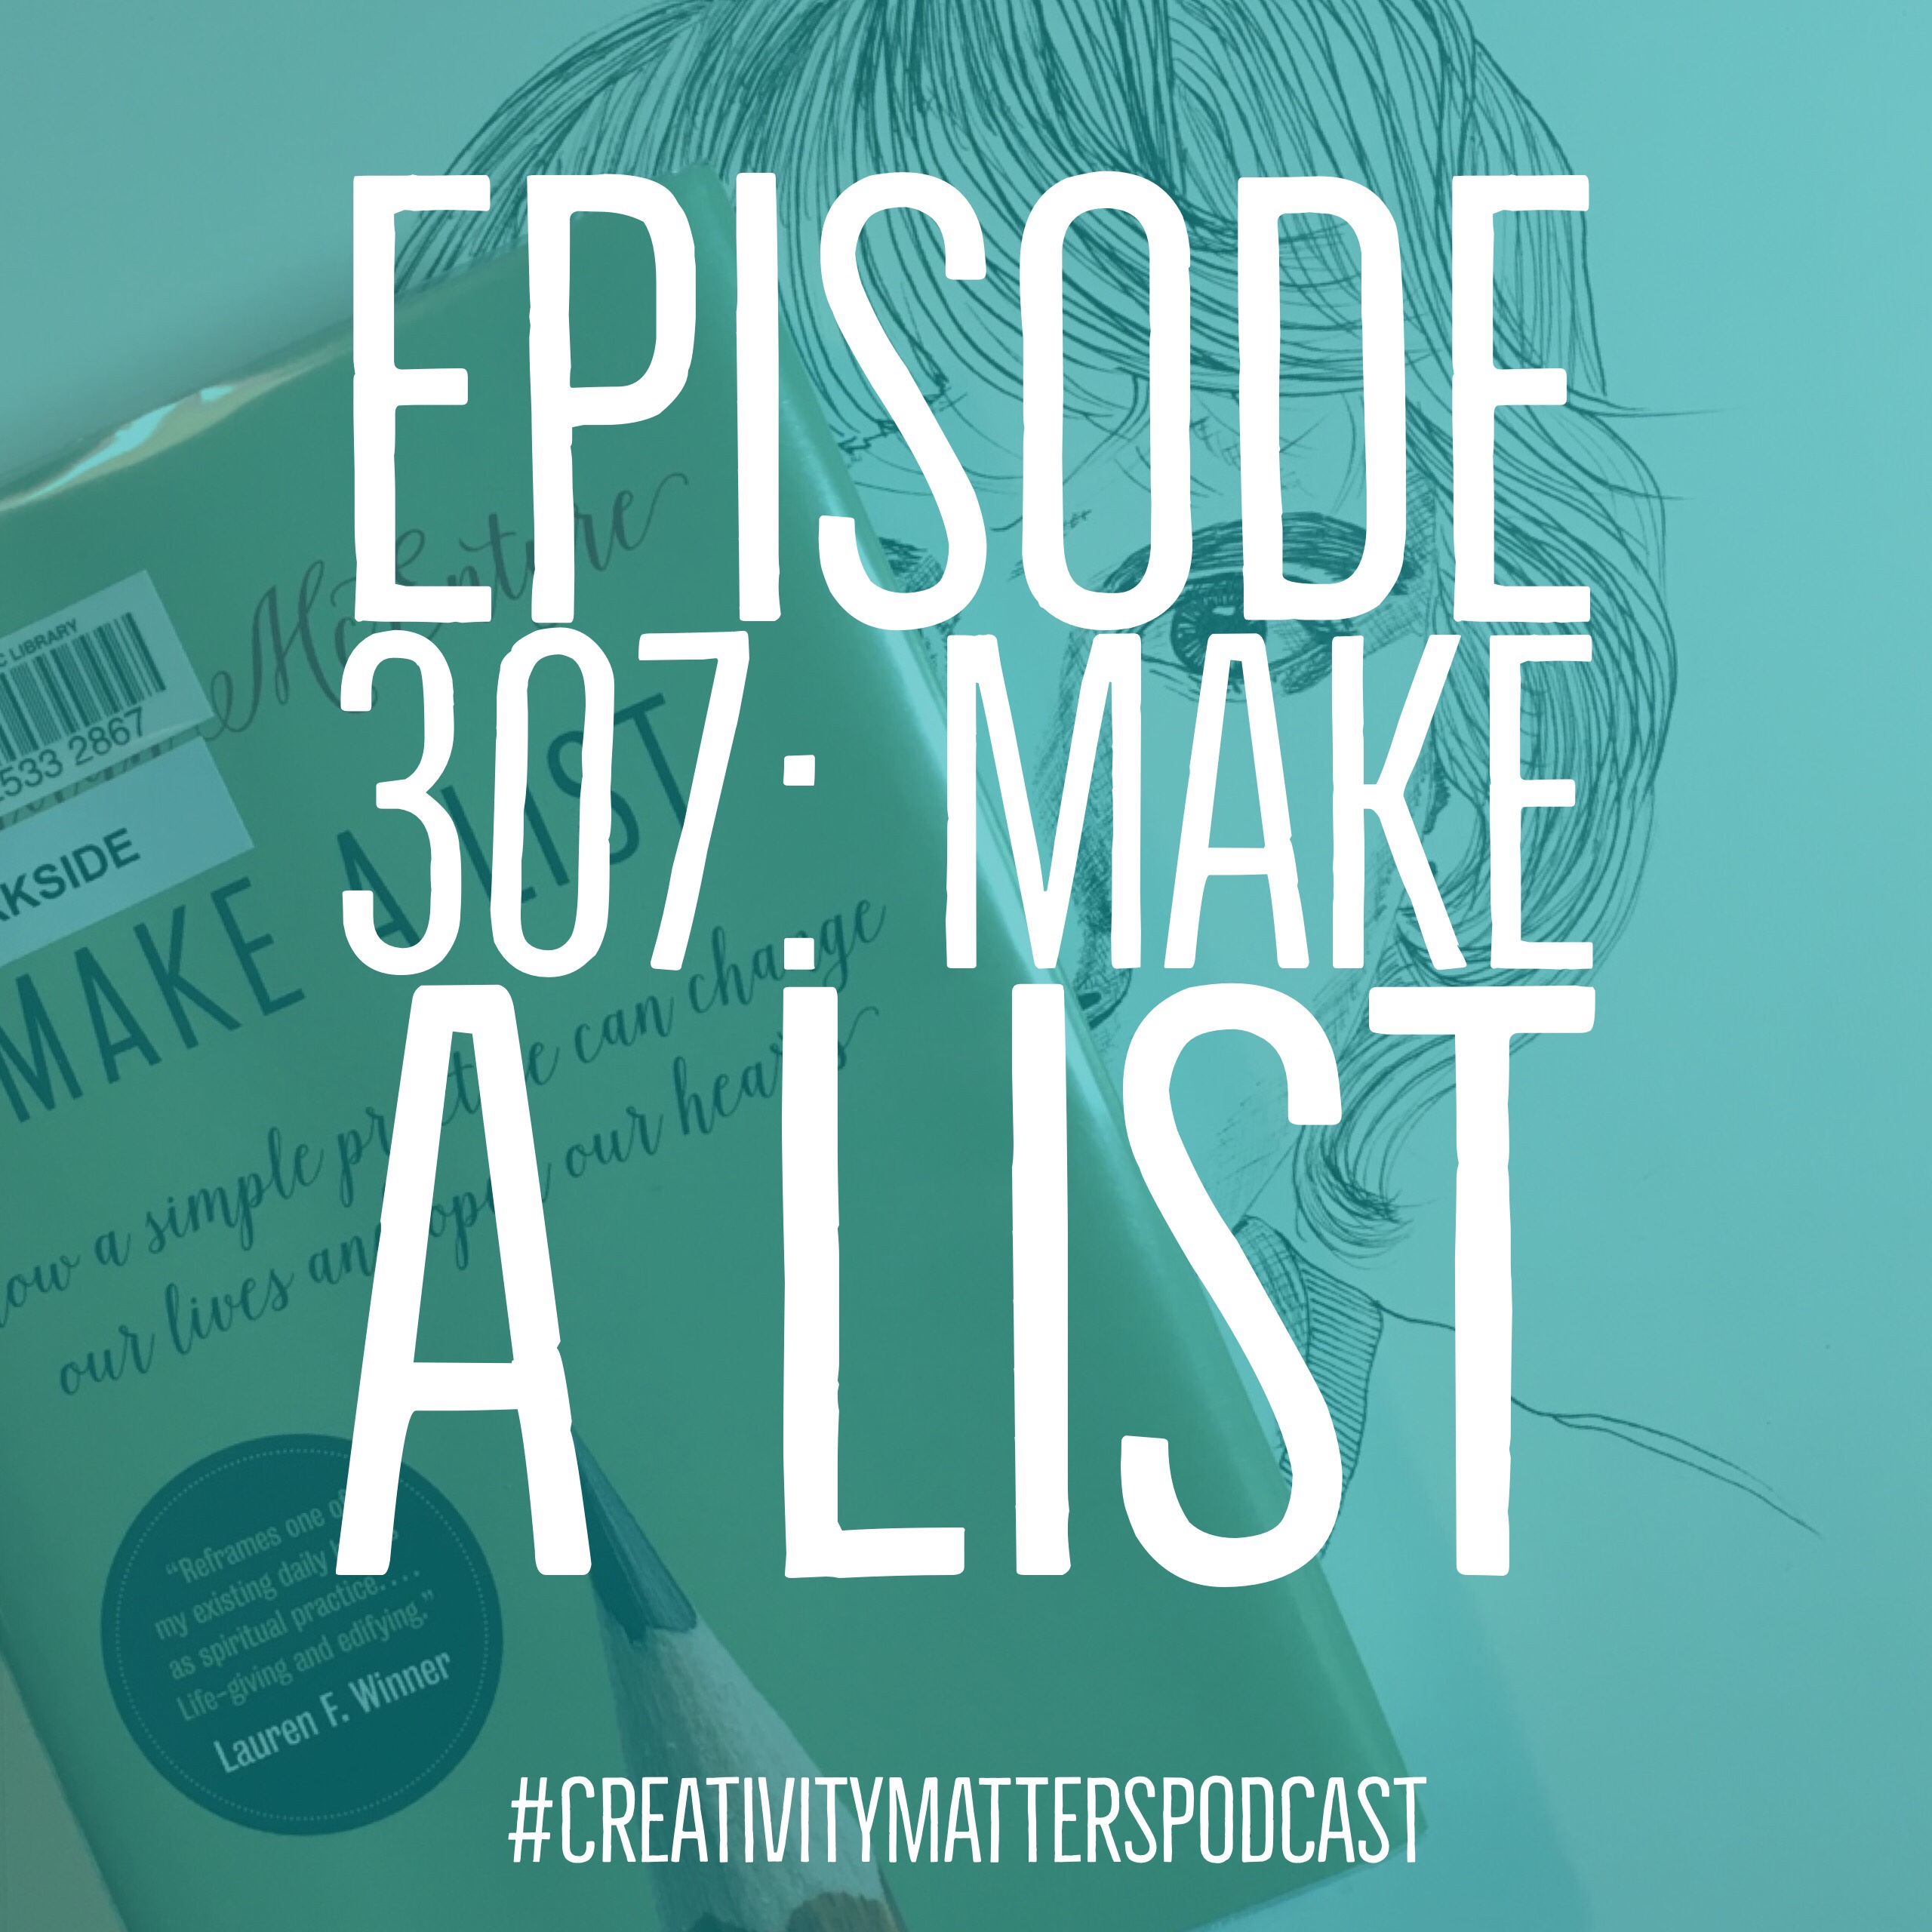 Episode 307: Make a List